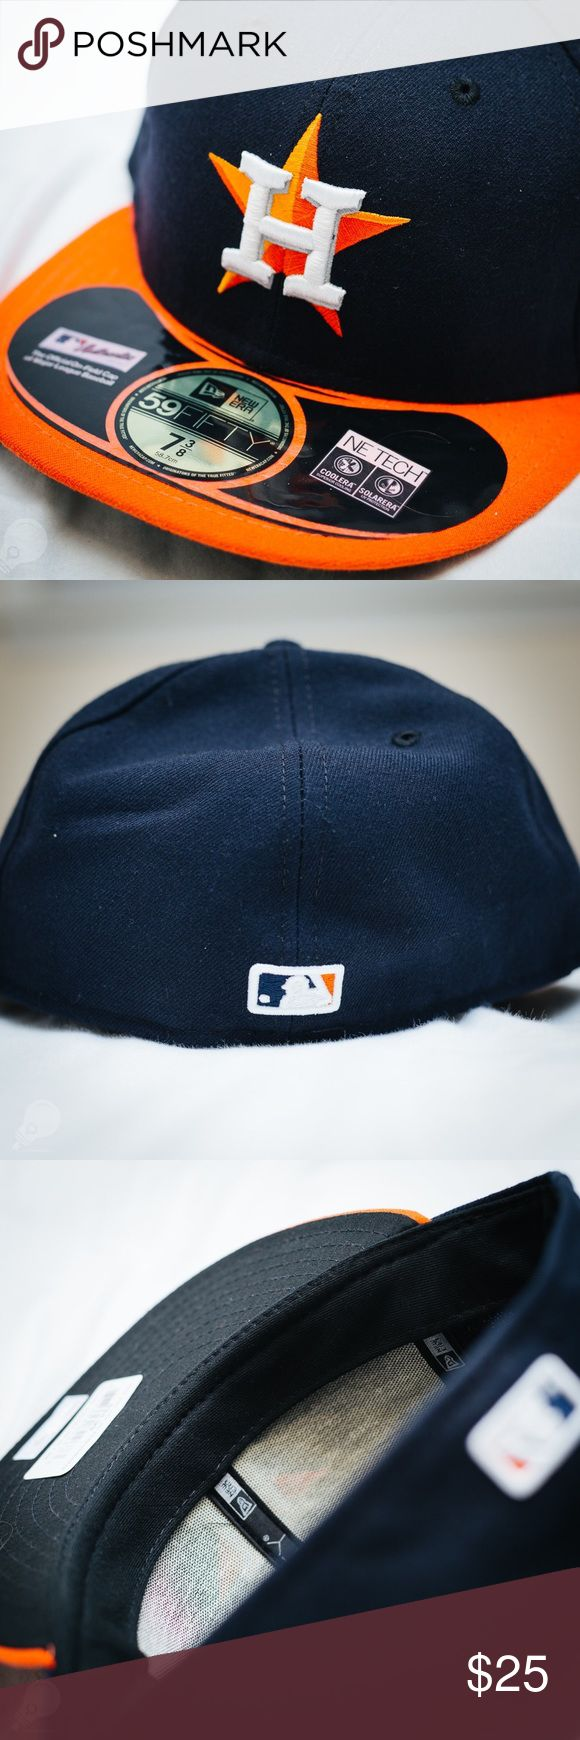 New Era 59FIFTY Houston Astros Official Hat Brand New New Era Accessories Hats